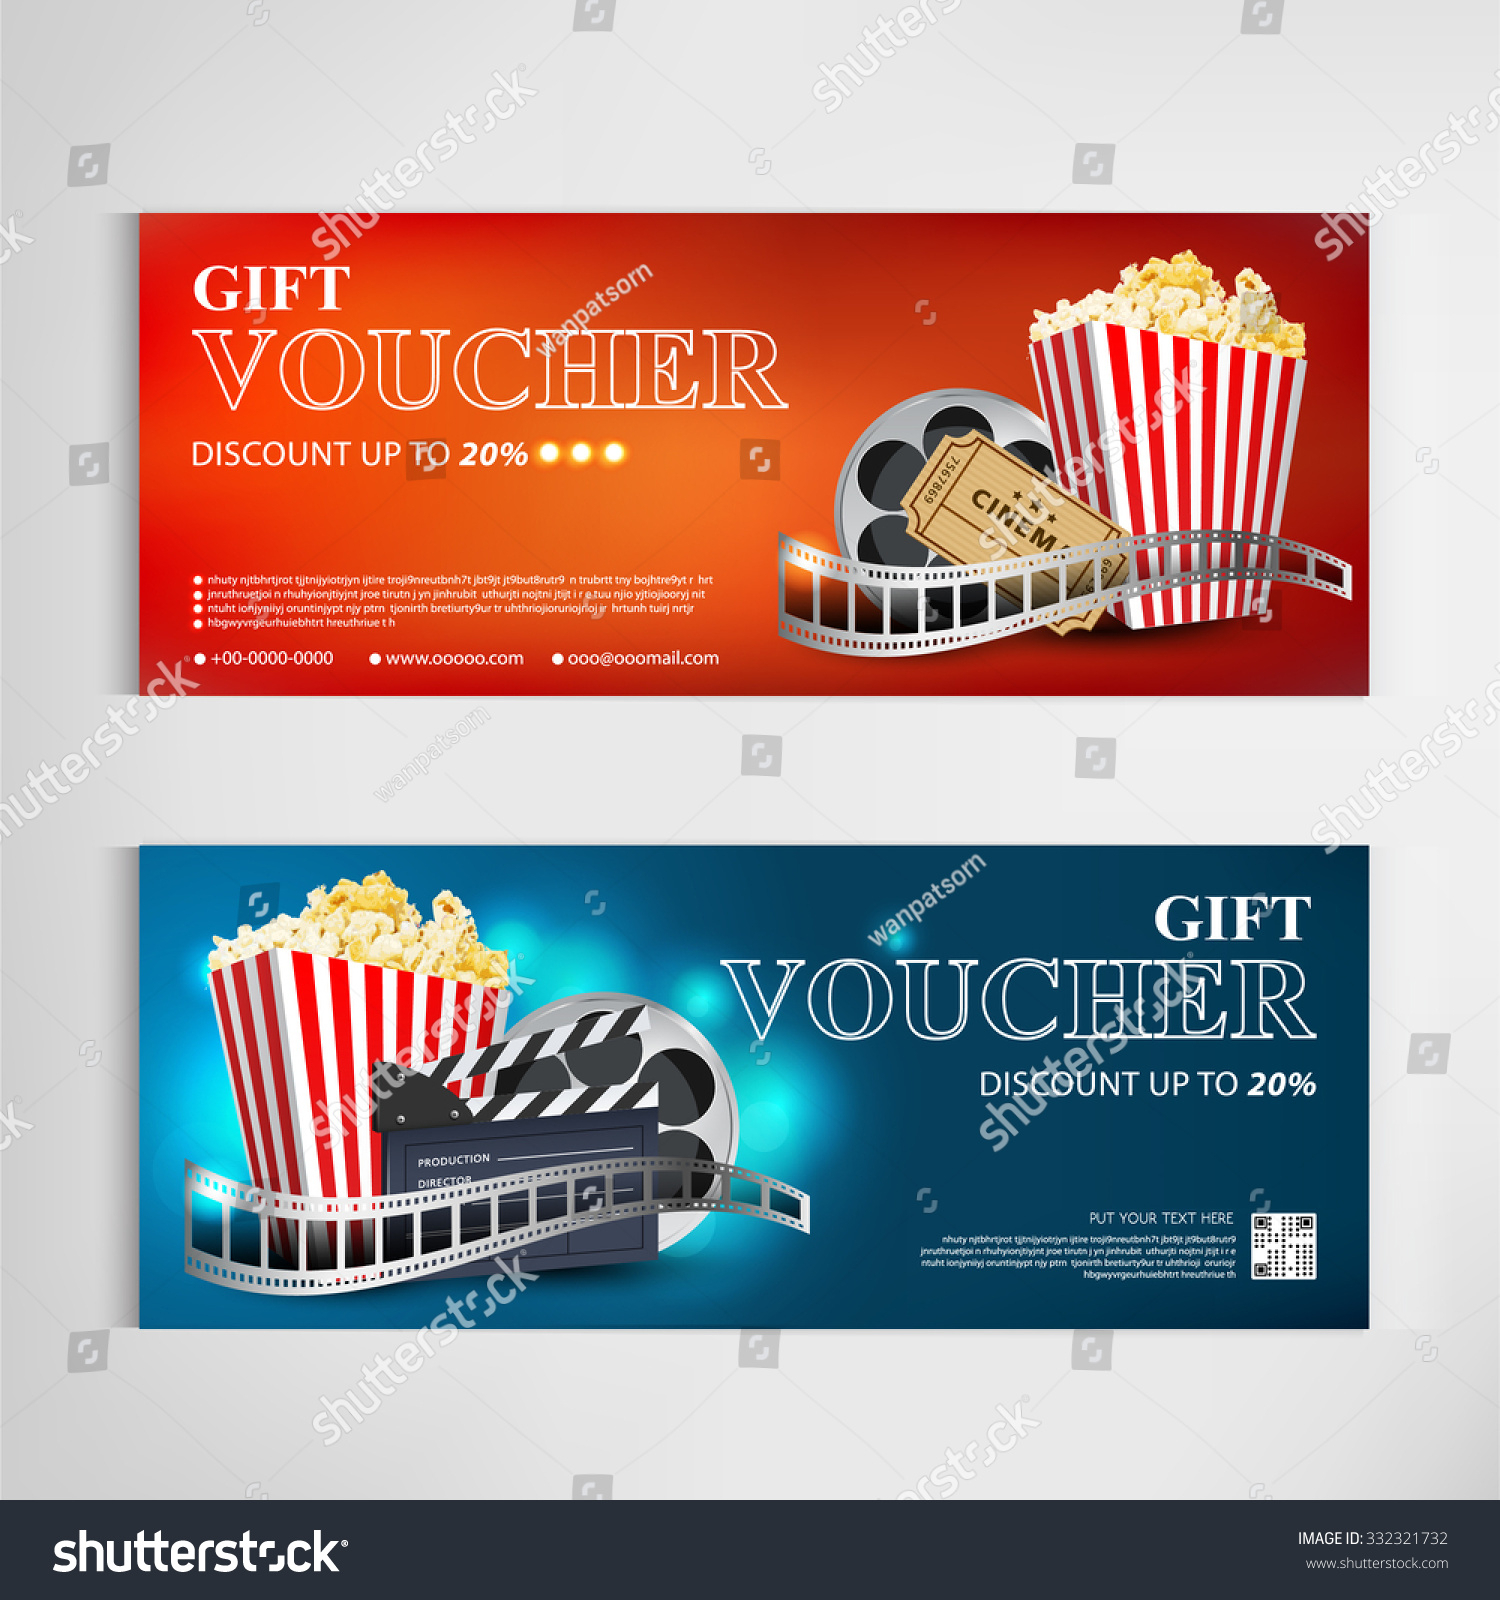 Gift Voucher Movie Template Modern… Stock Photo 332321732 With Regard To Movie Gift Certificate Template